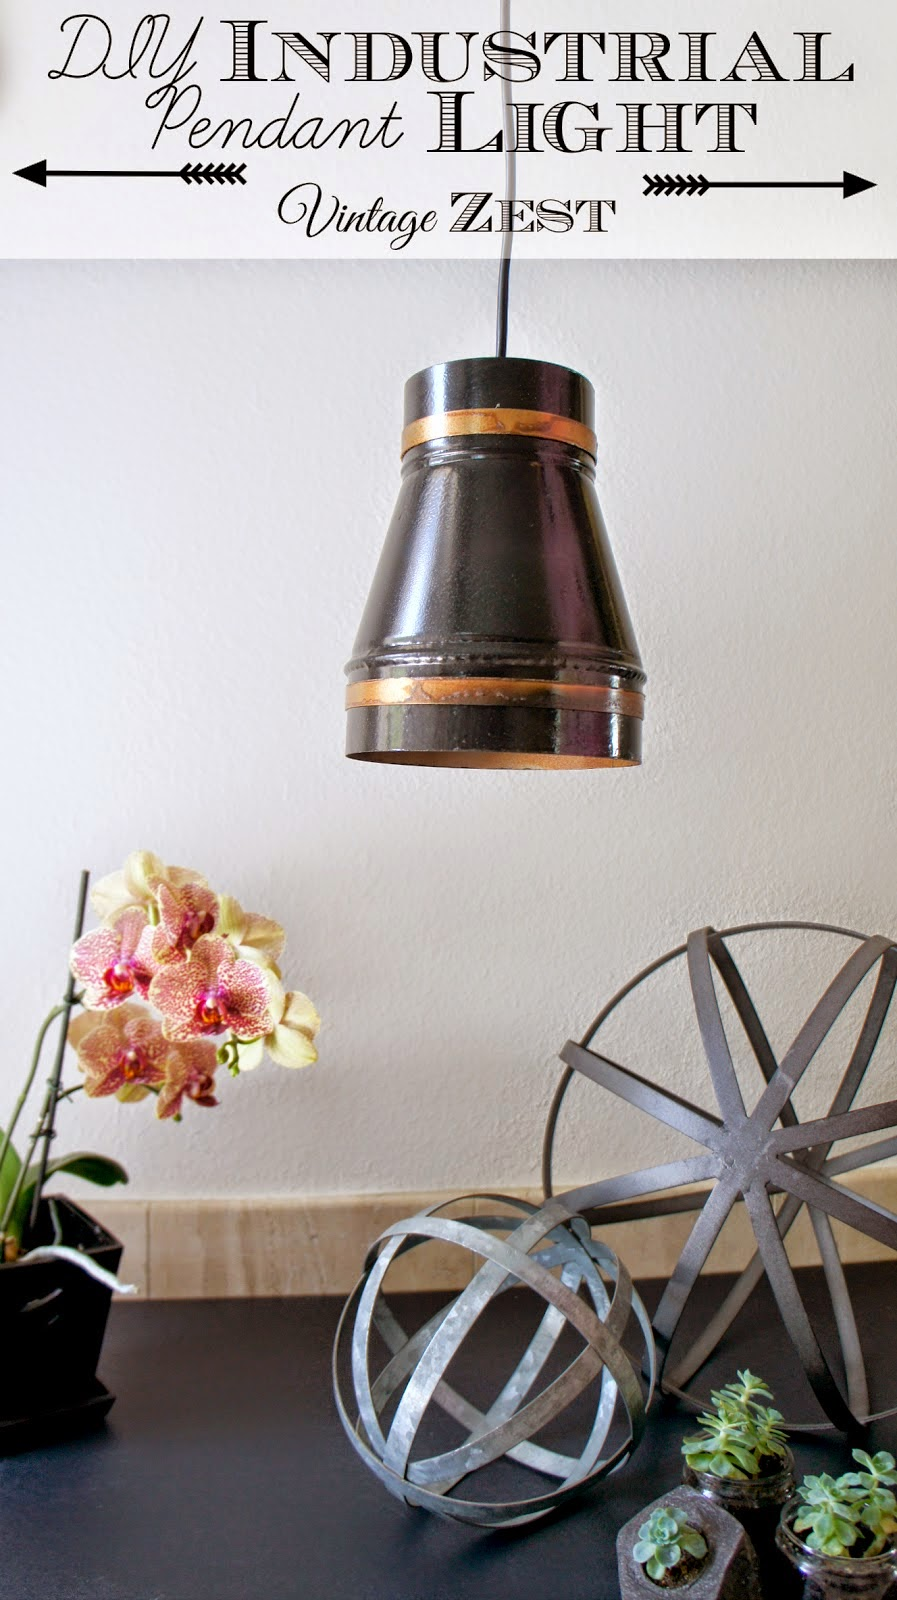 Industrial pendant light with led